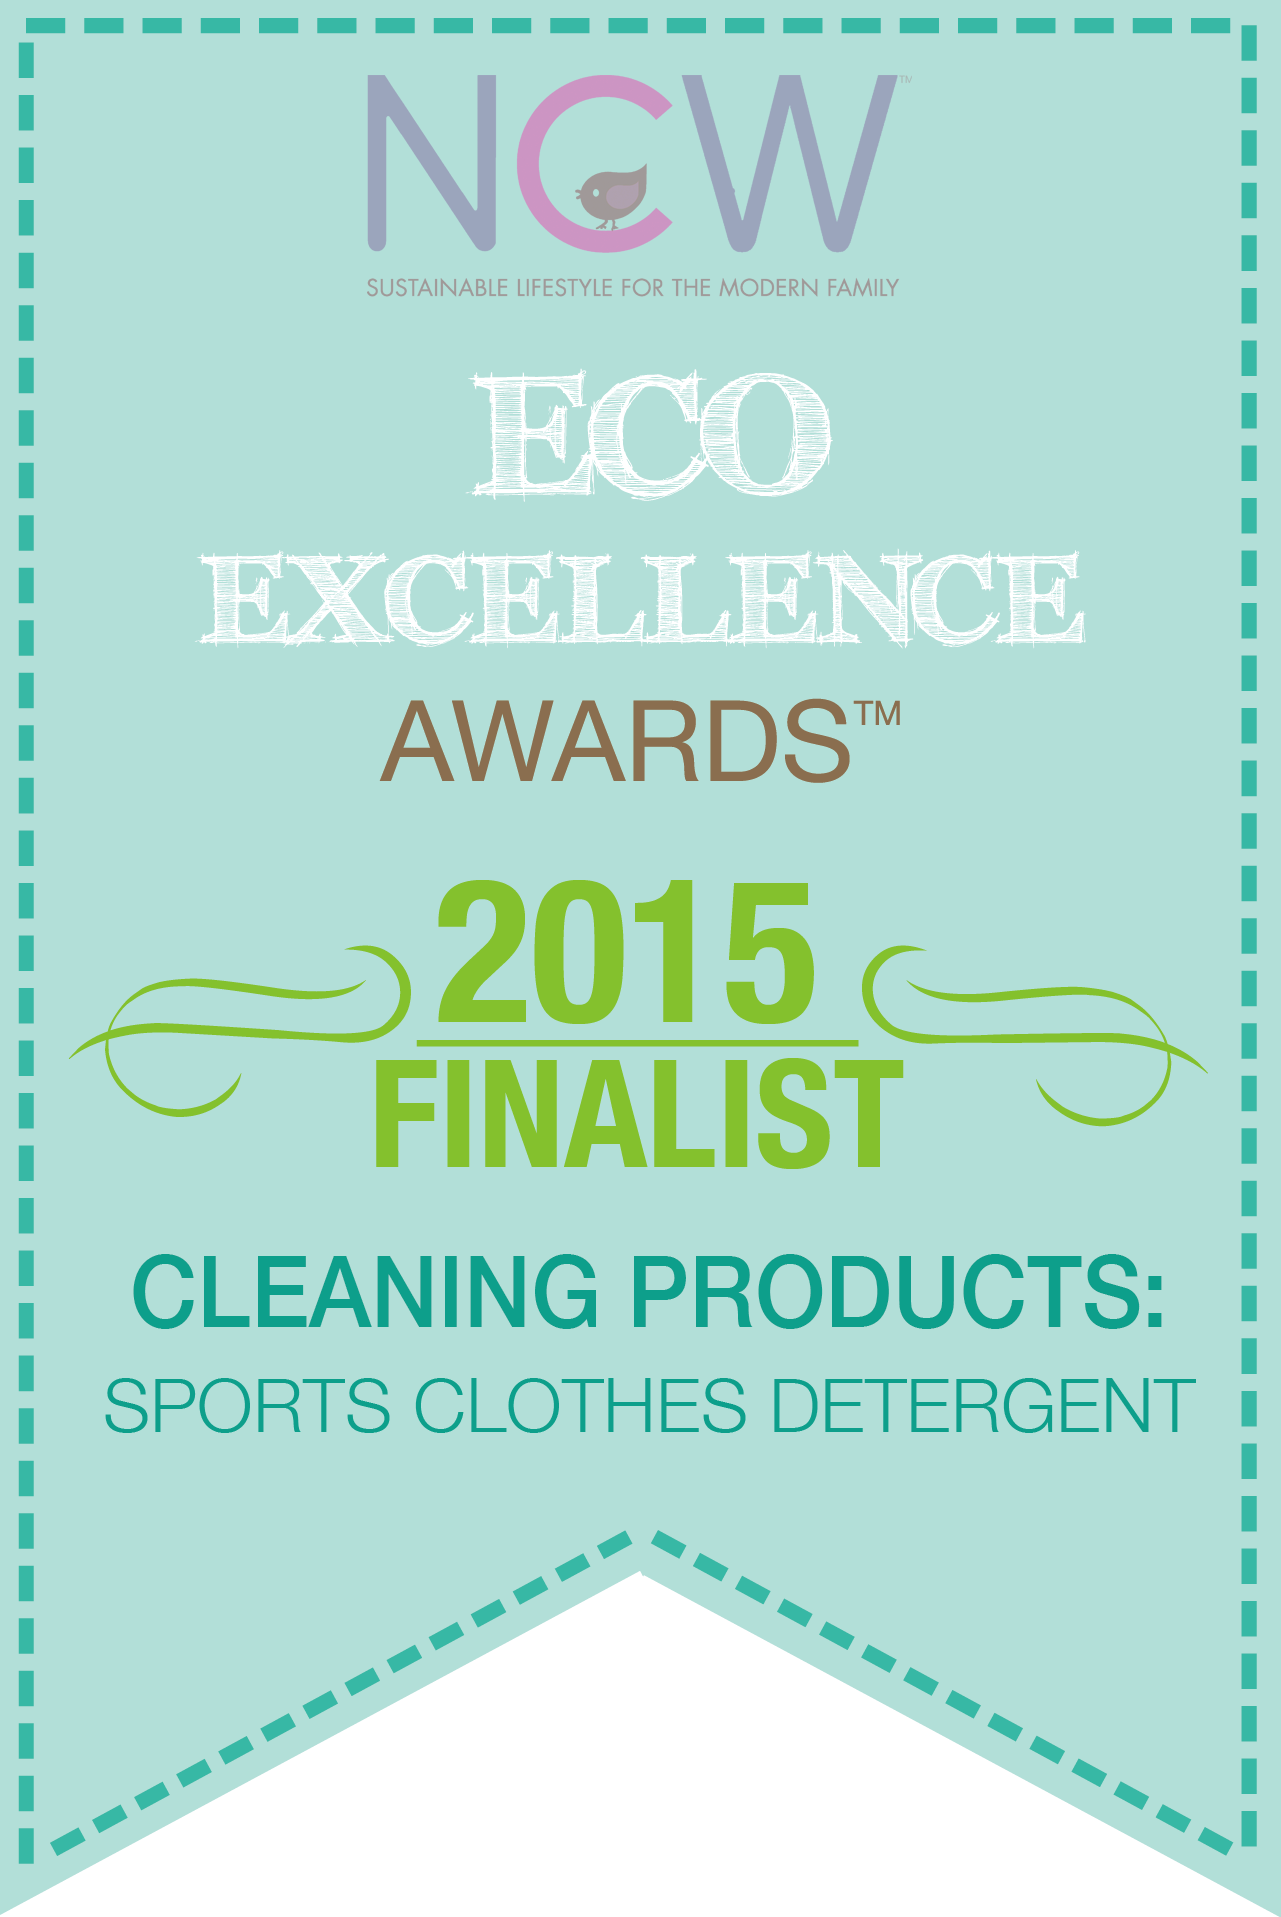 Cleaning Products: Sports Clothes Detergent - Eco Excellence Awards 2015